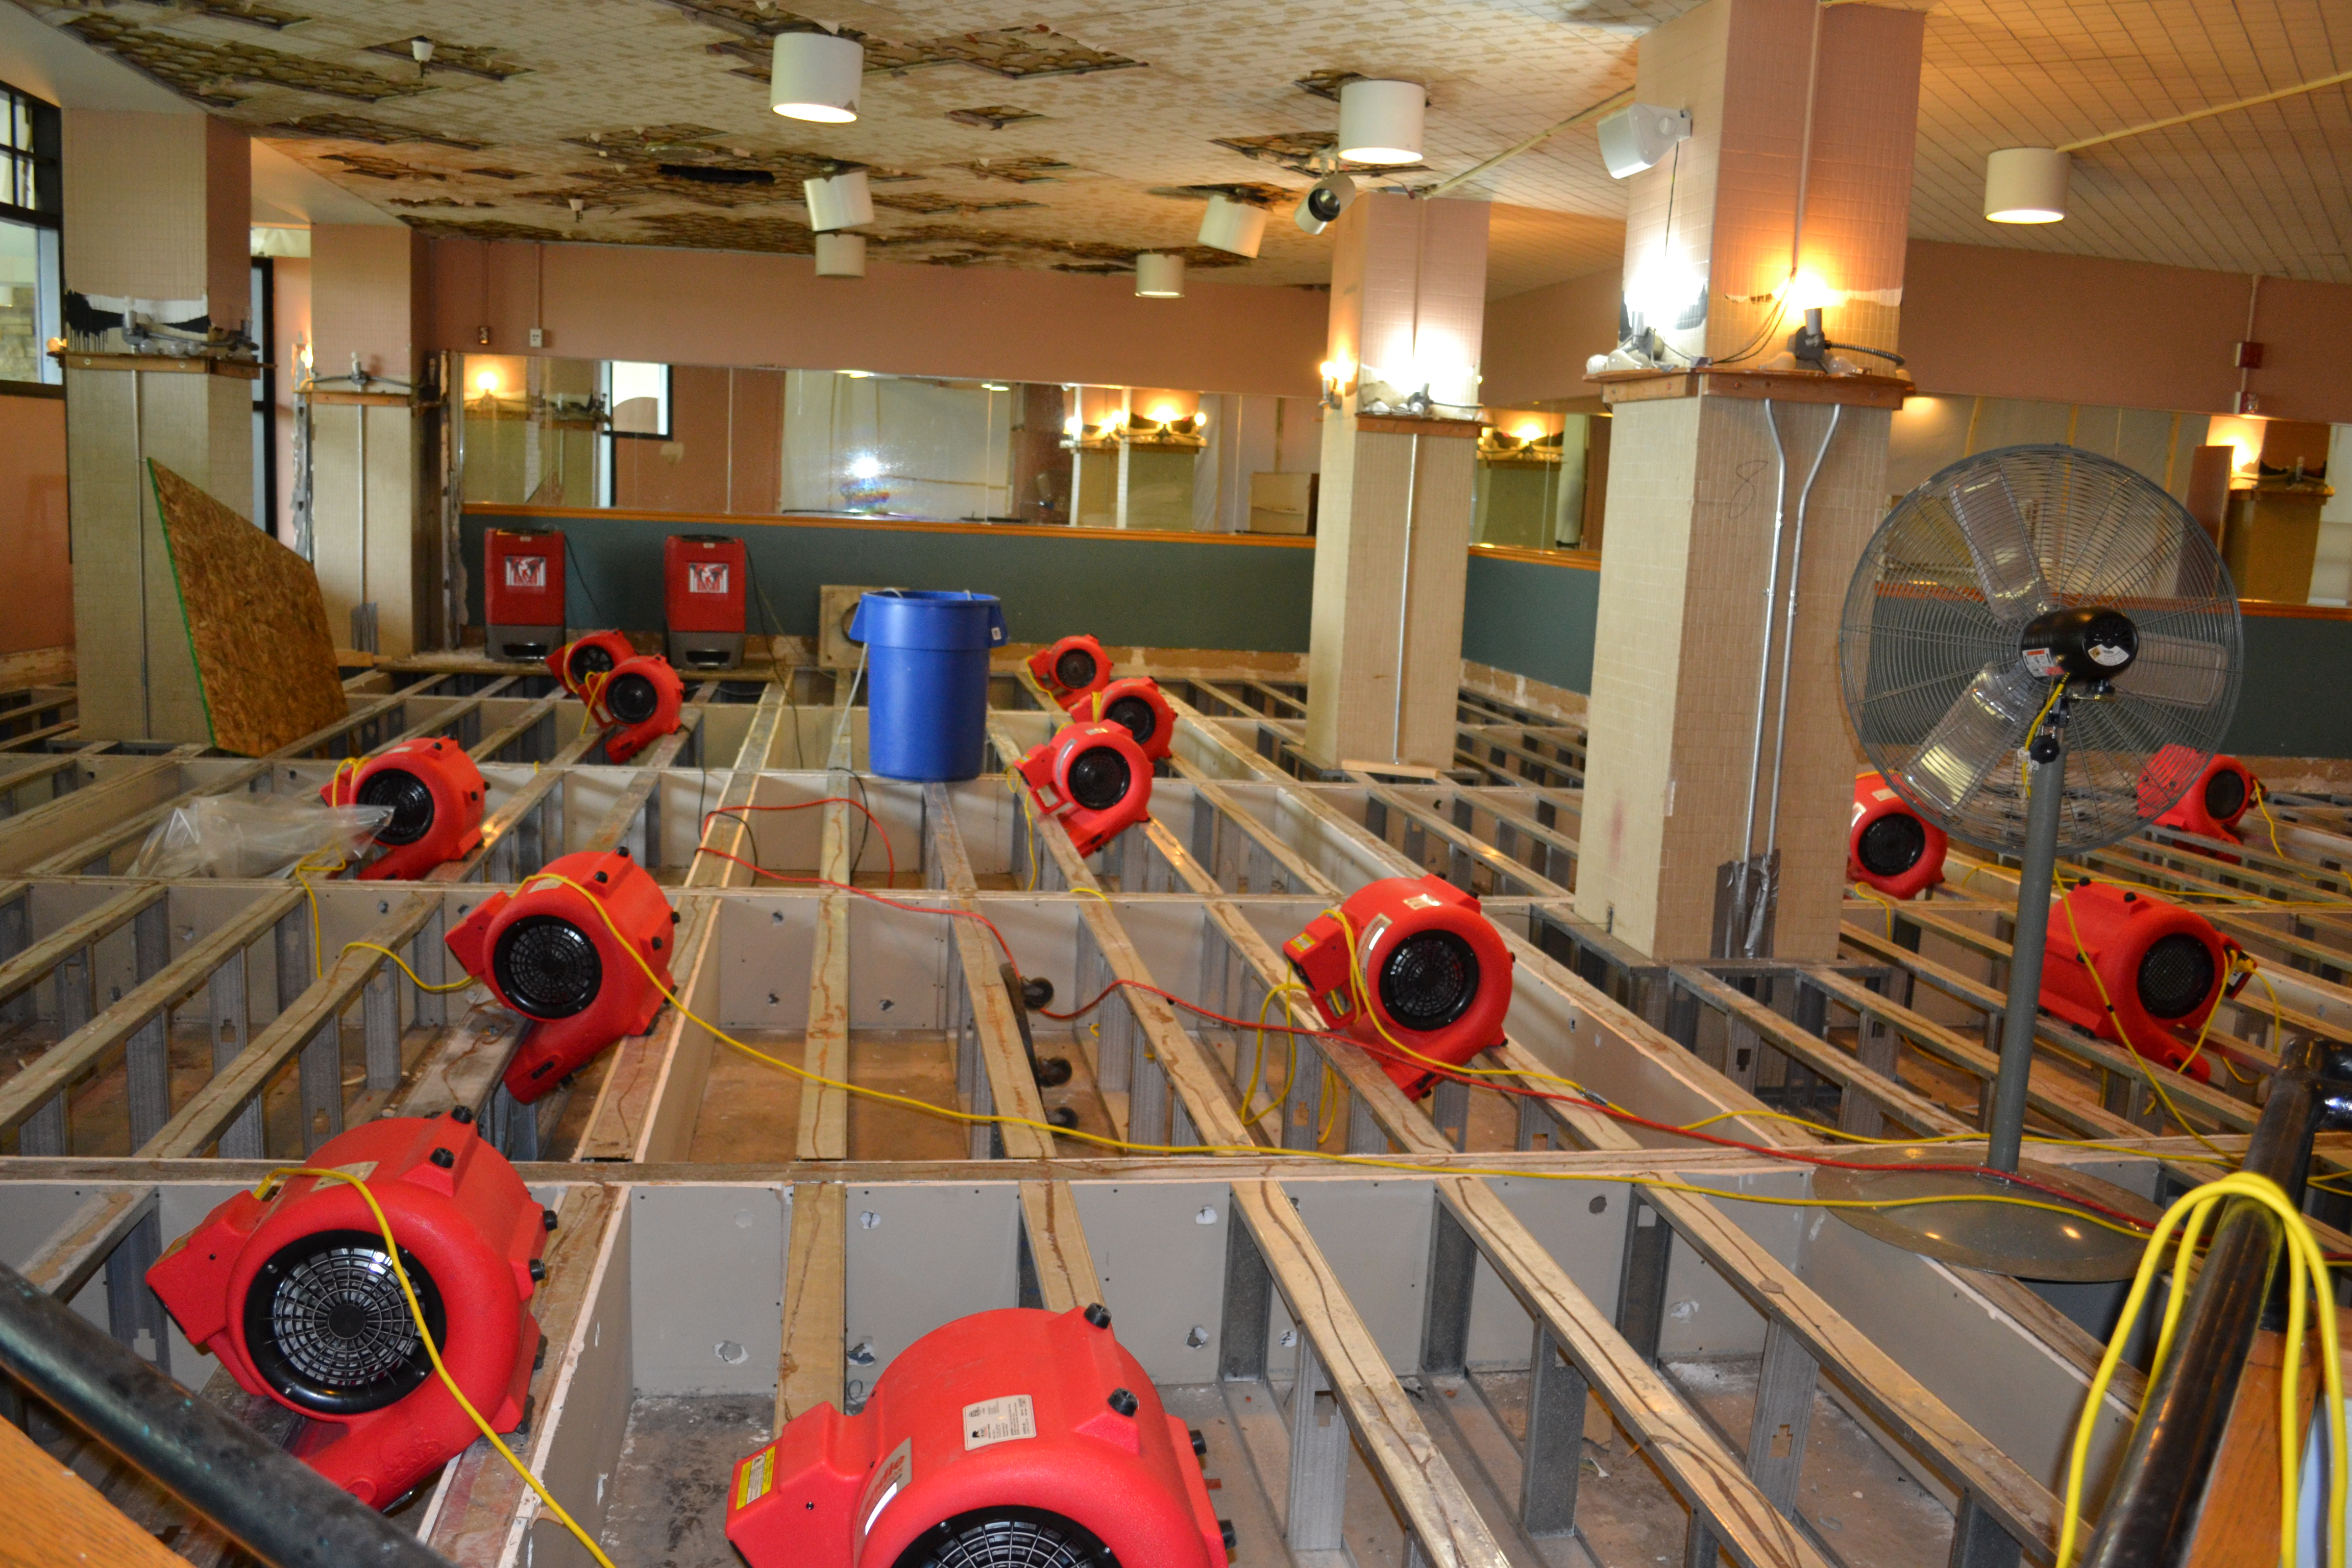 Palm Beach Water Restoration Service- Servpro, water damage restoration, fire damage restoration, mold remediation inspection- 23-We do home restoration services like Servpro such as water damage restoration, water removal, mold removal, fire and smoke damage services, fire damage restoration, mold remediation inspection, and more.